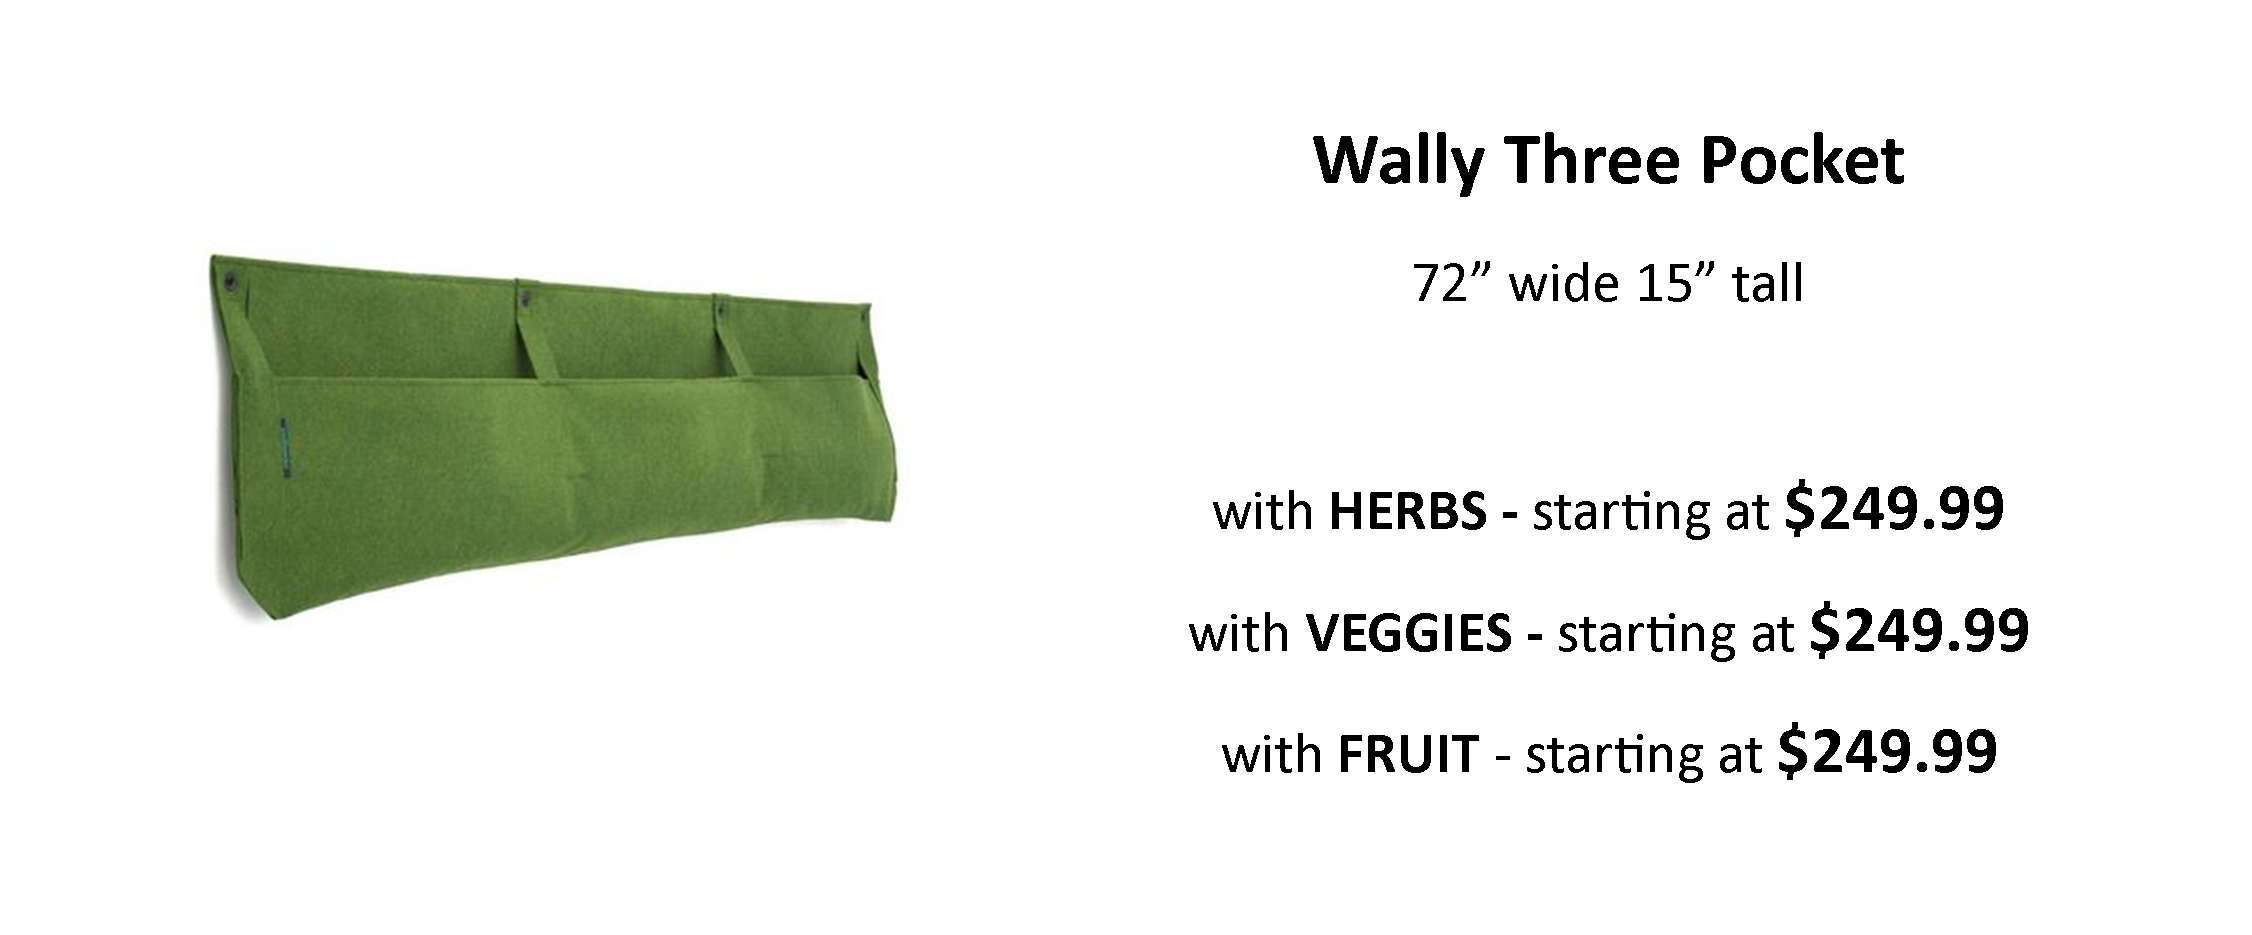 Wally Three Pocket Planter with Edible Plants